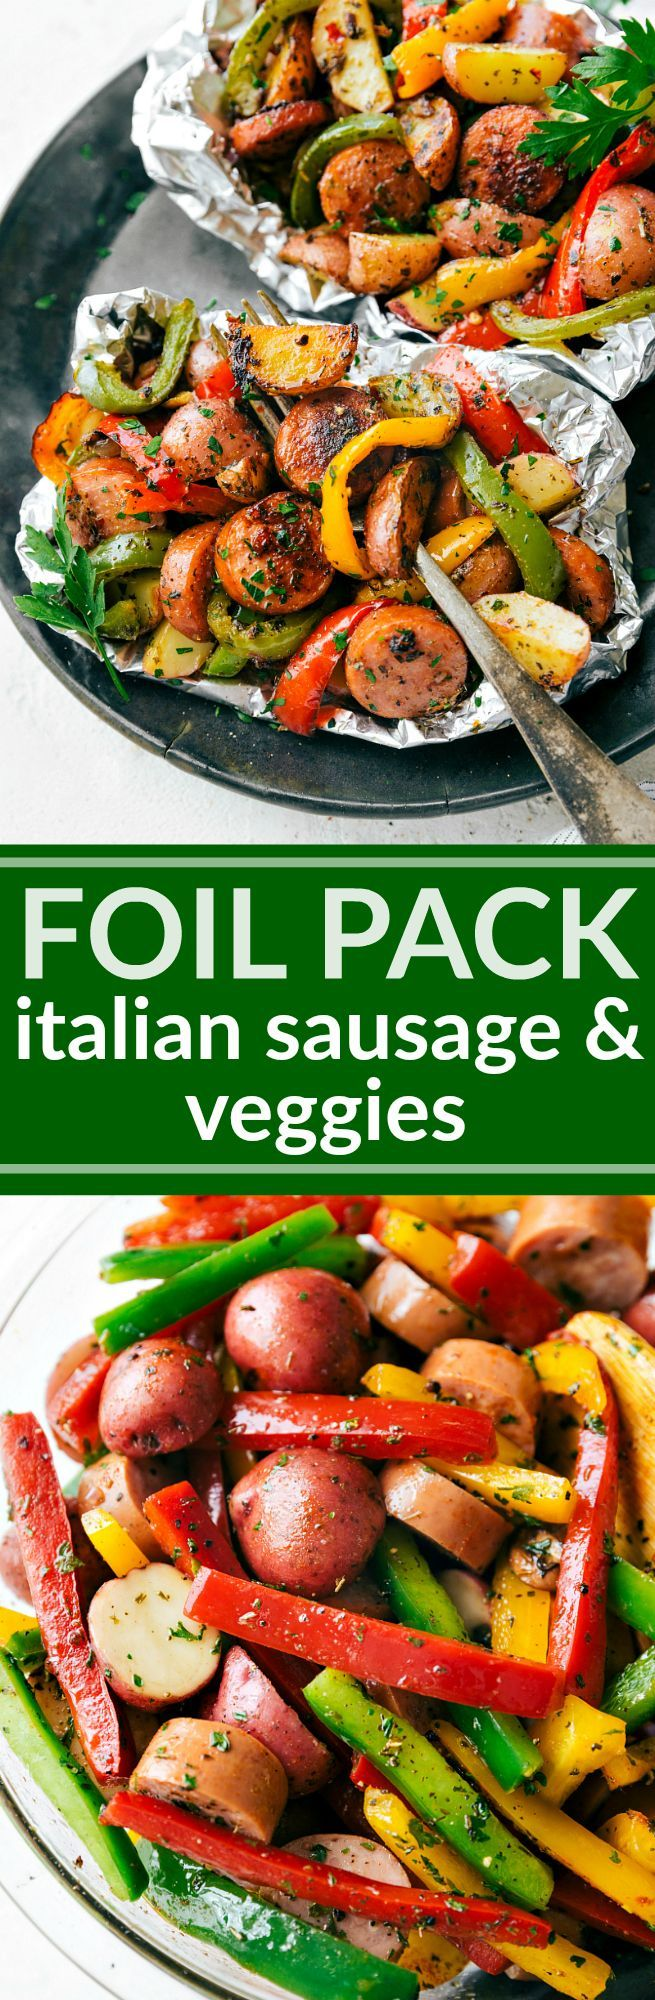 EASY TIN FOIL ITALIAN SAUSAGE AND VEGGIES!!! A great outdoor grill or camping recipe. PLUS instructions to cook this in the stove and without foil! via http://chelseasmessyapron.com